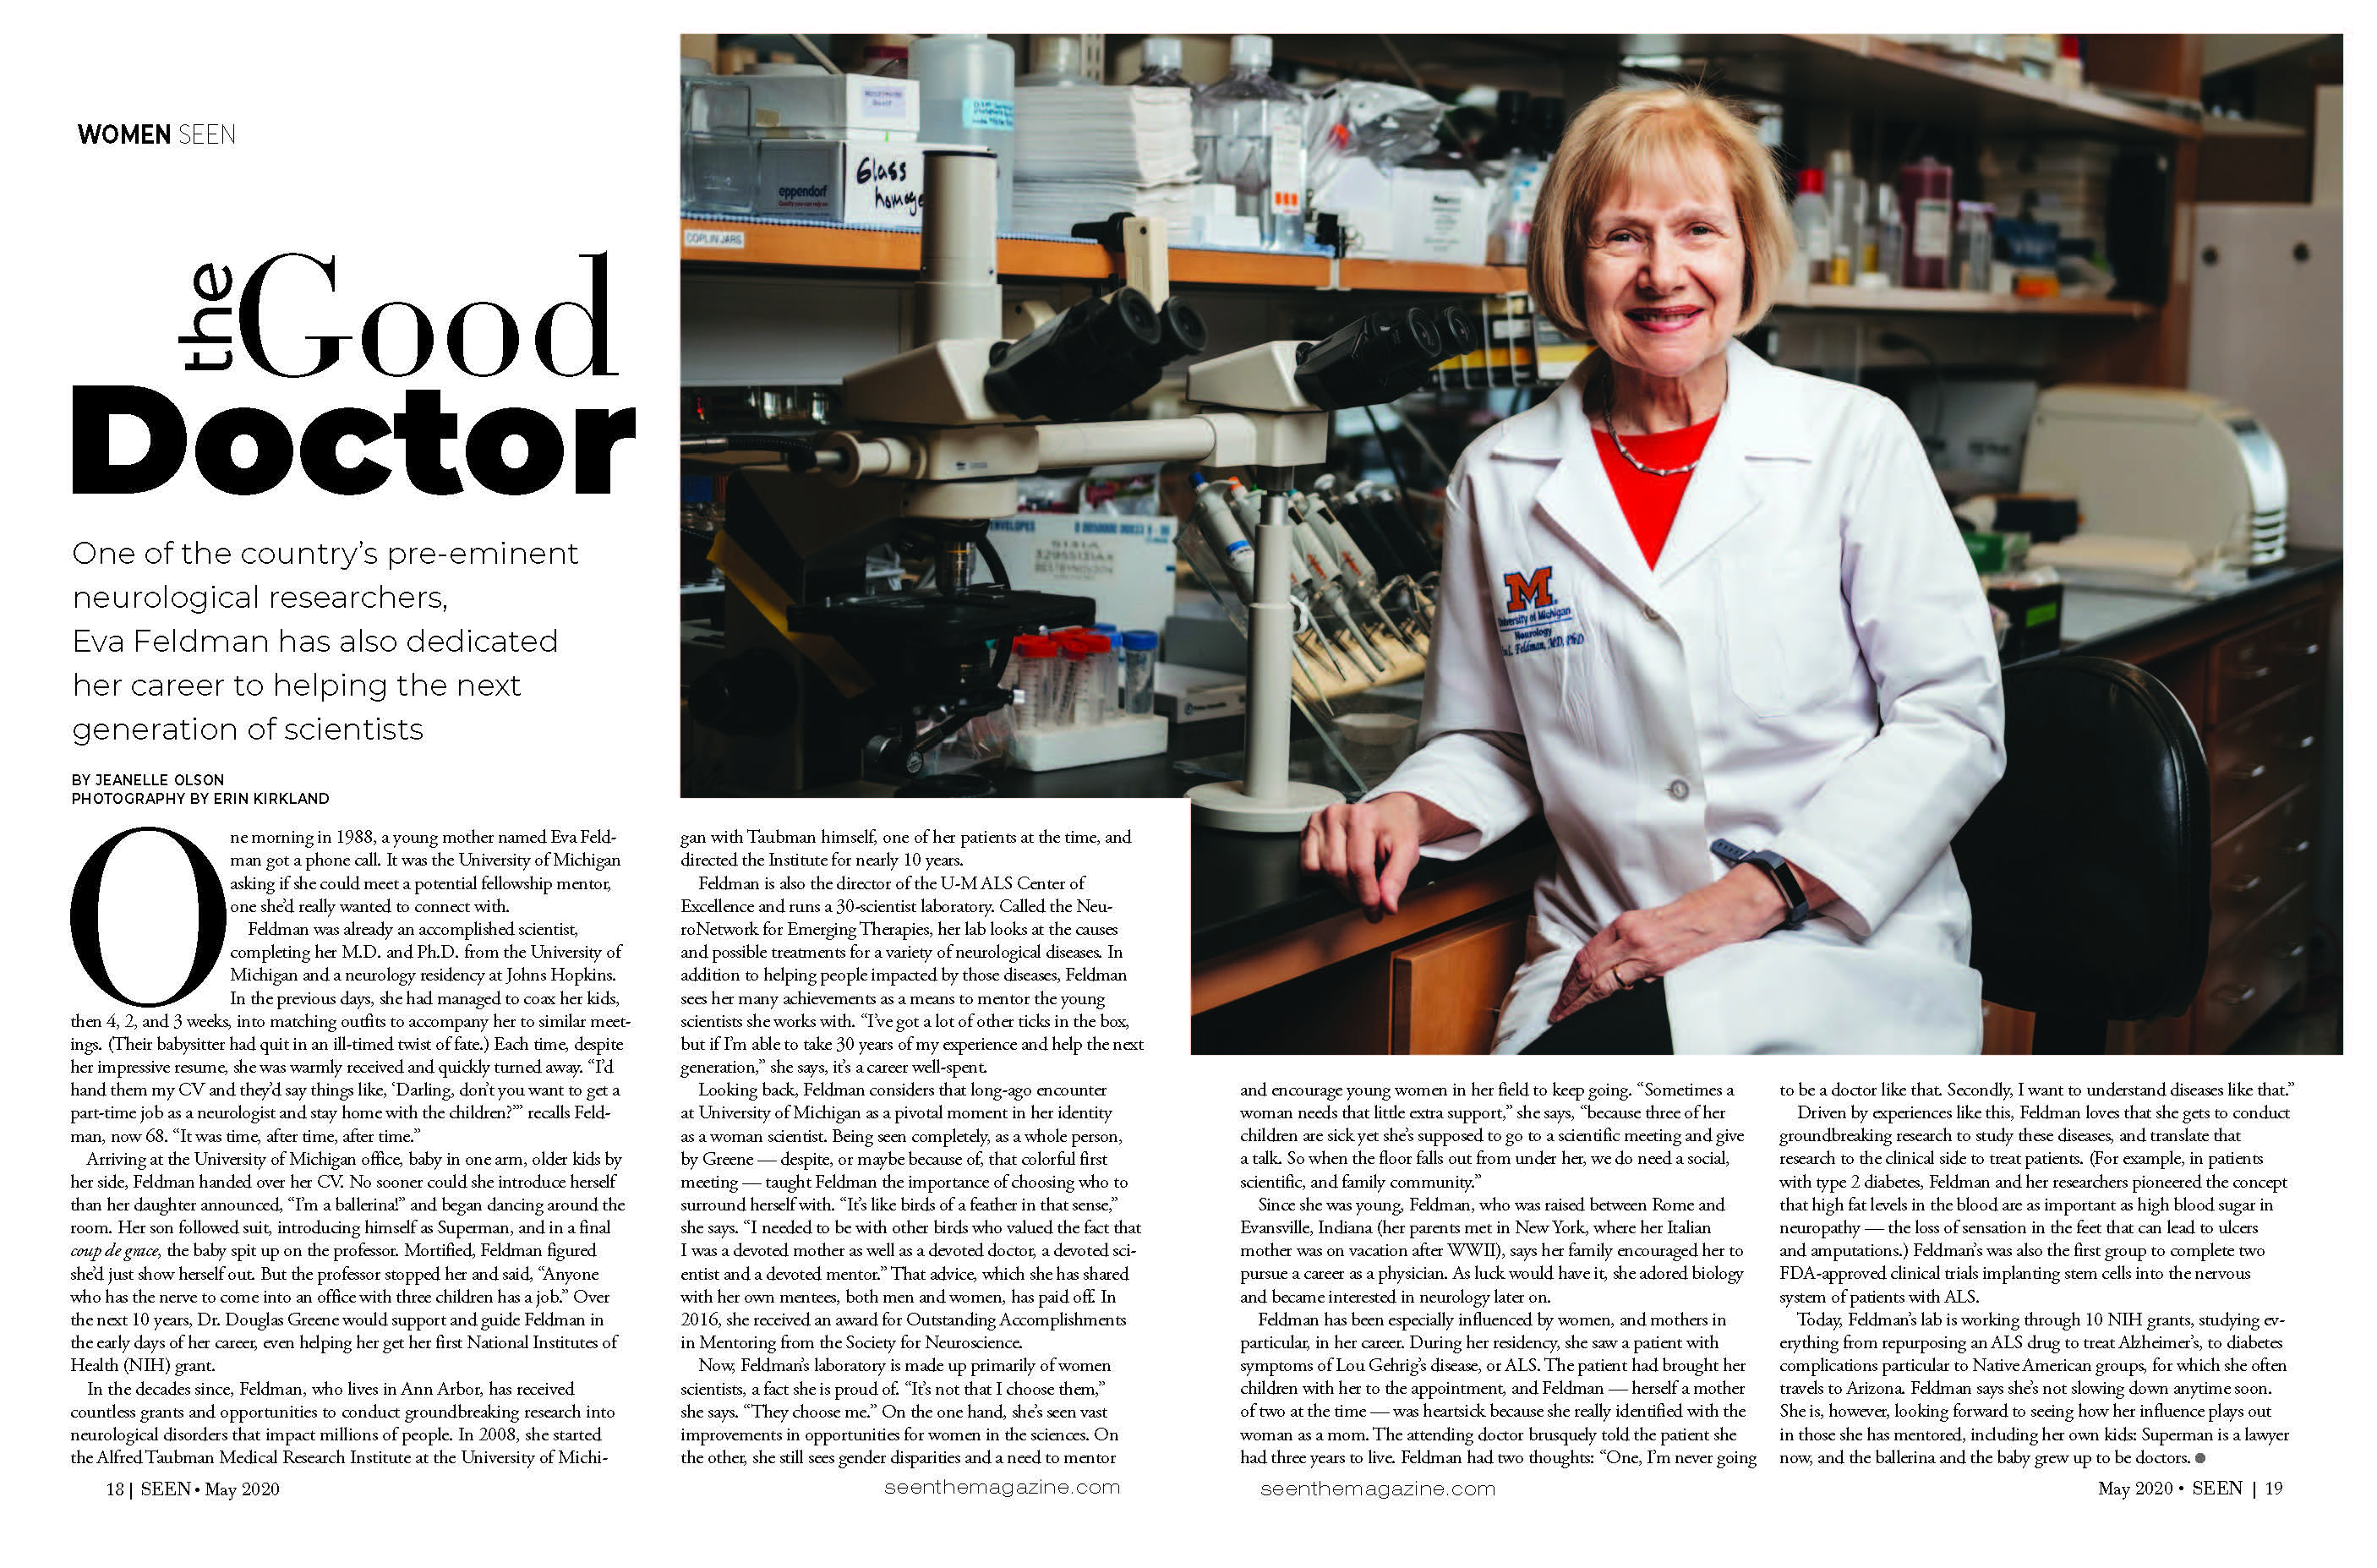 SEEN Magazine article featuring Dr. Eva Feldman of the NeuroNetwork for Emerging Therapies